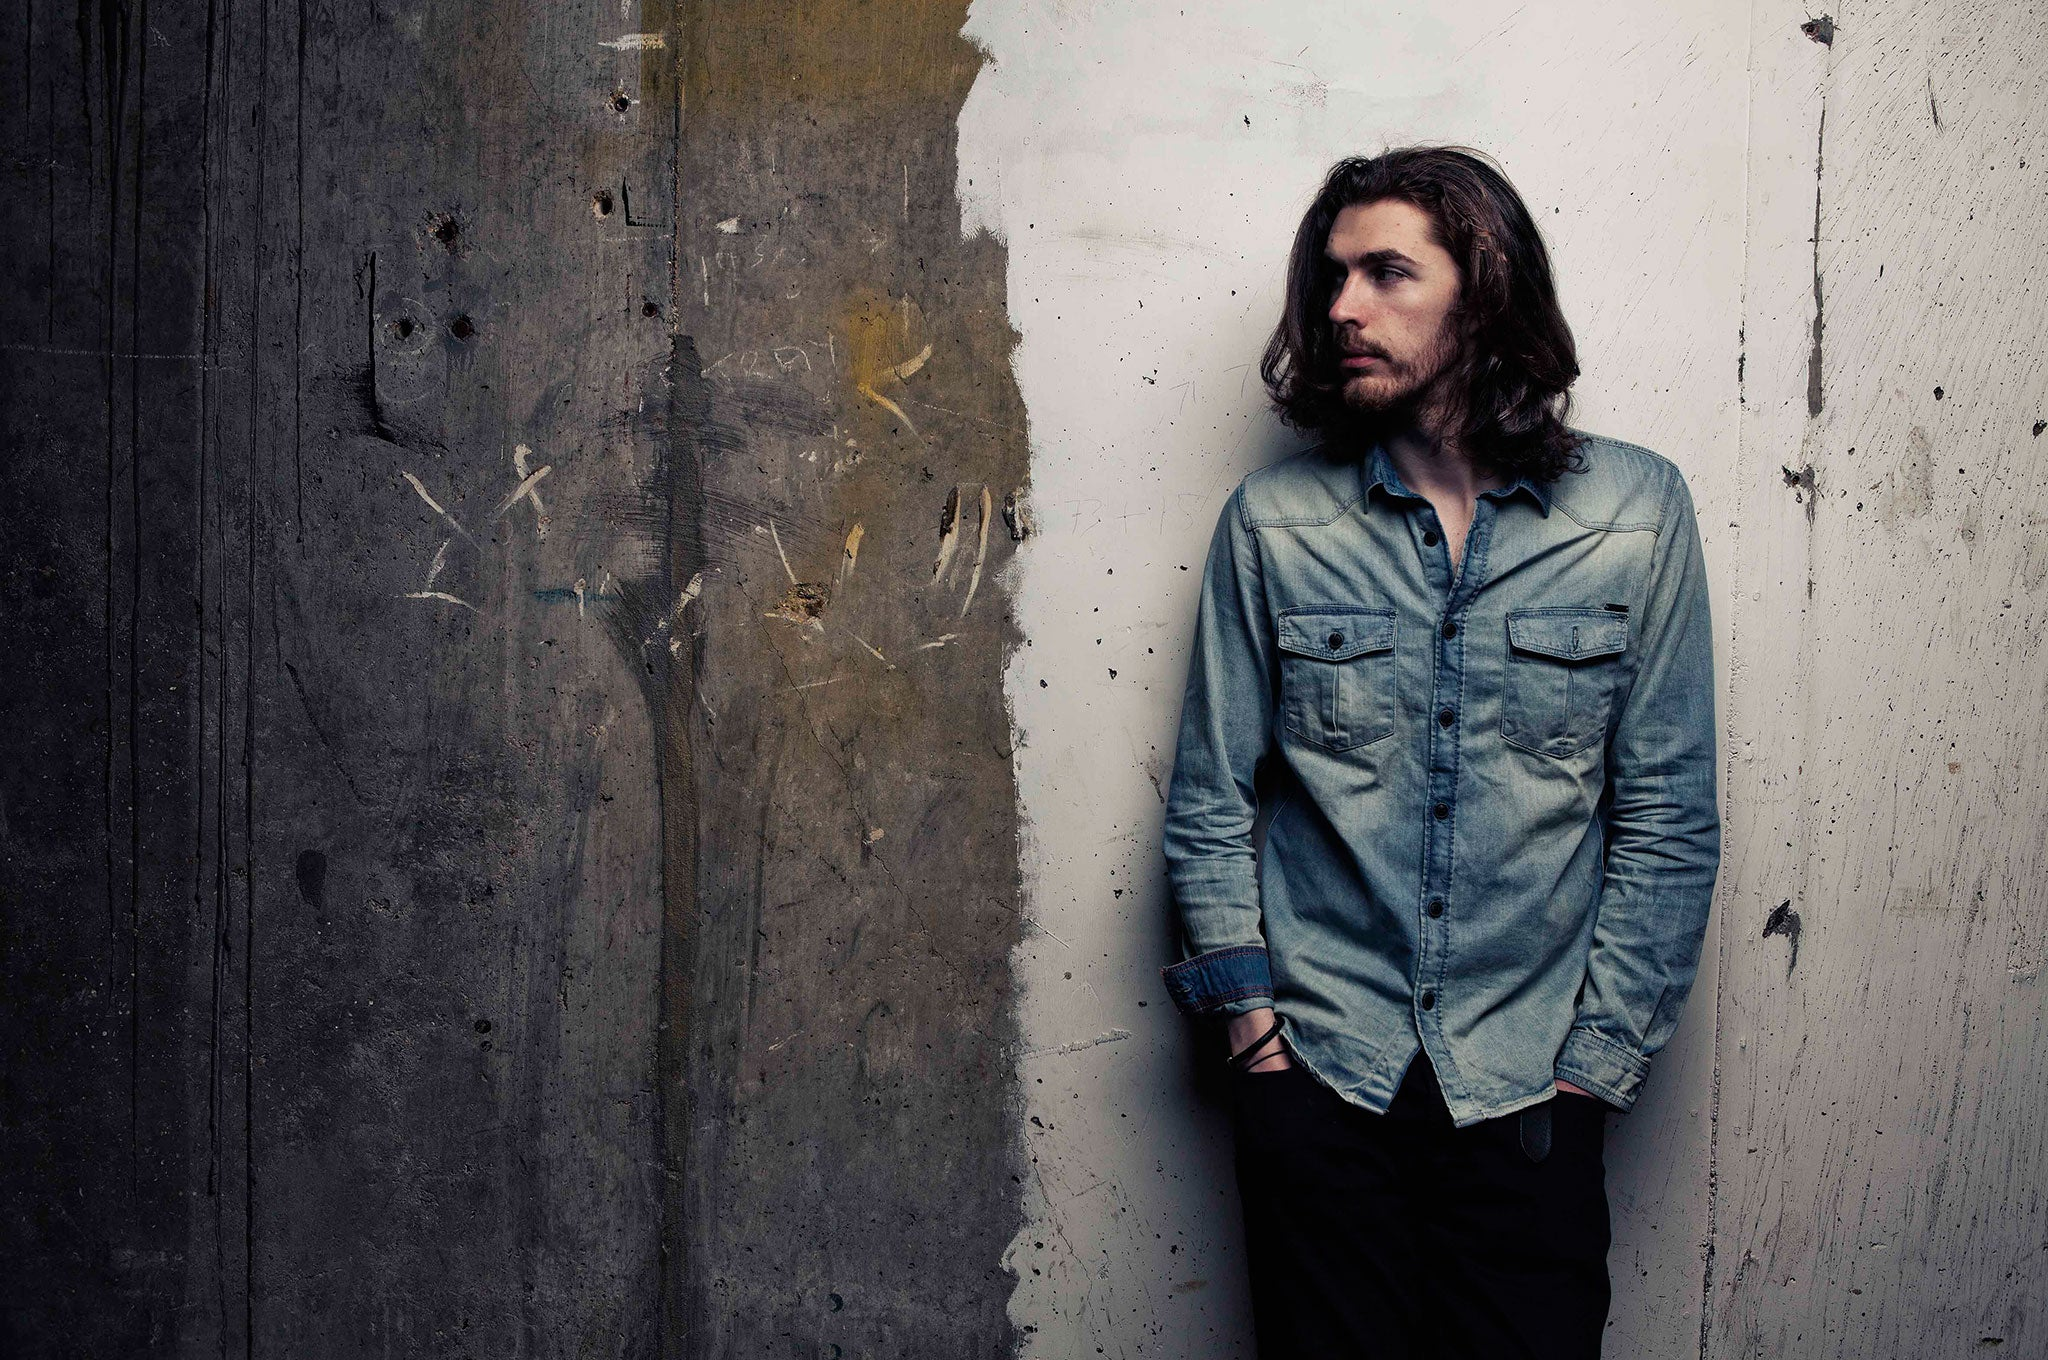 https://static.independent.co.uk/s3fs-public/thumbnails/image/2014/12/10/12/hozier2.jpg